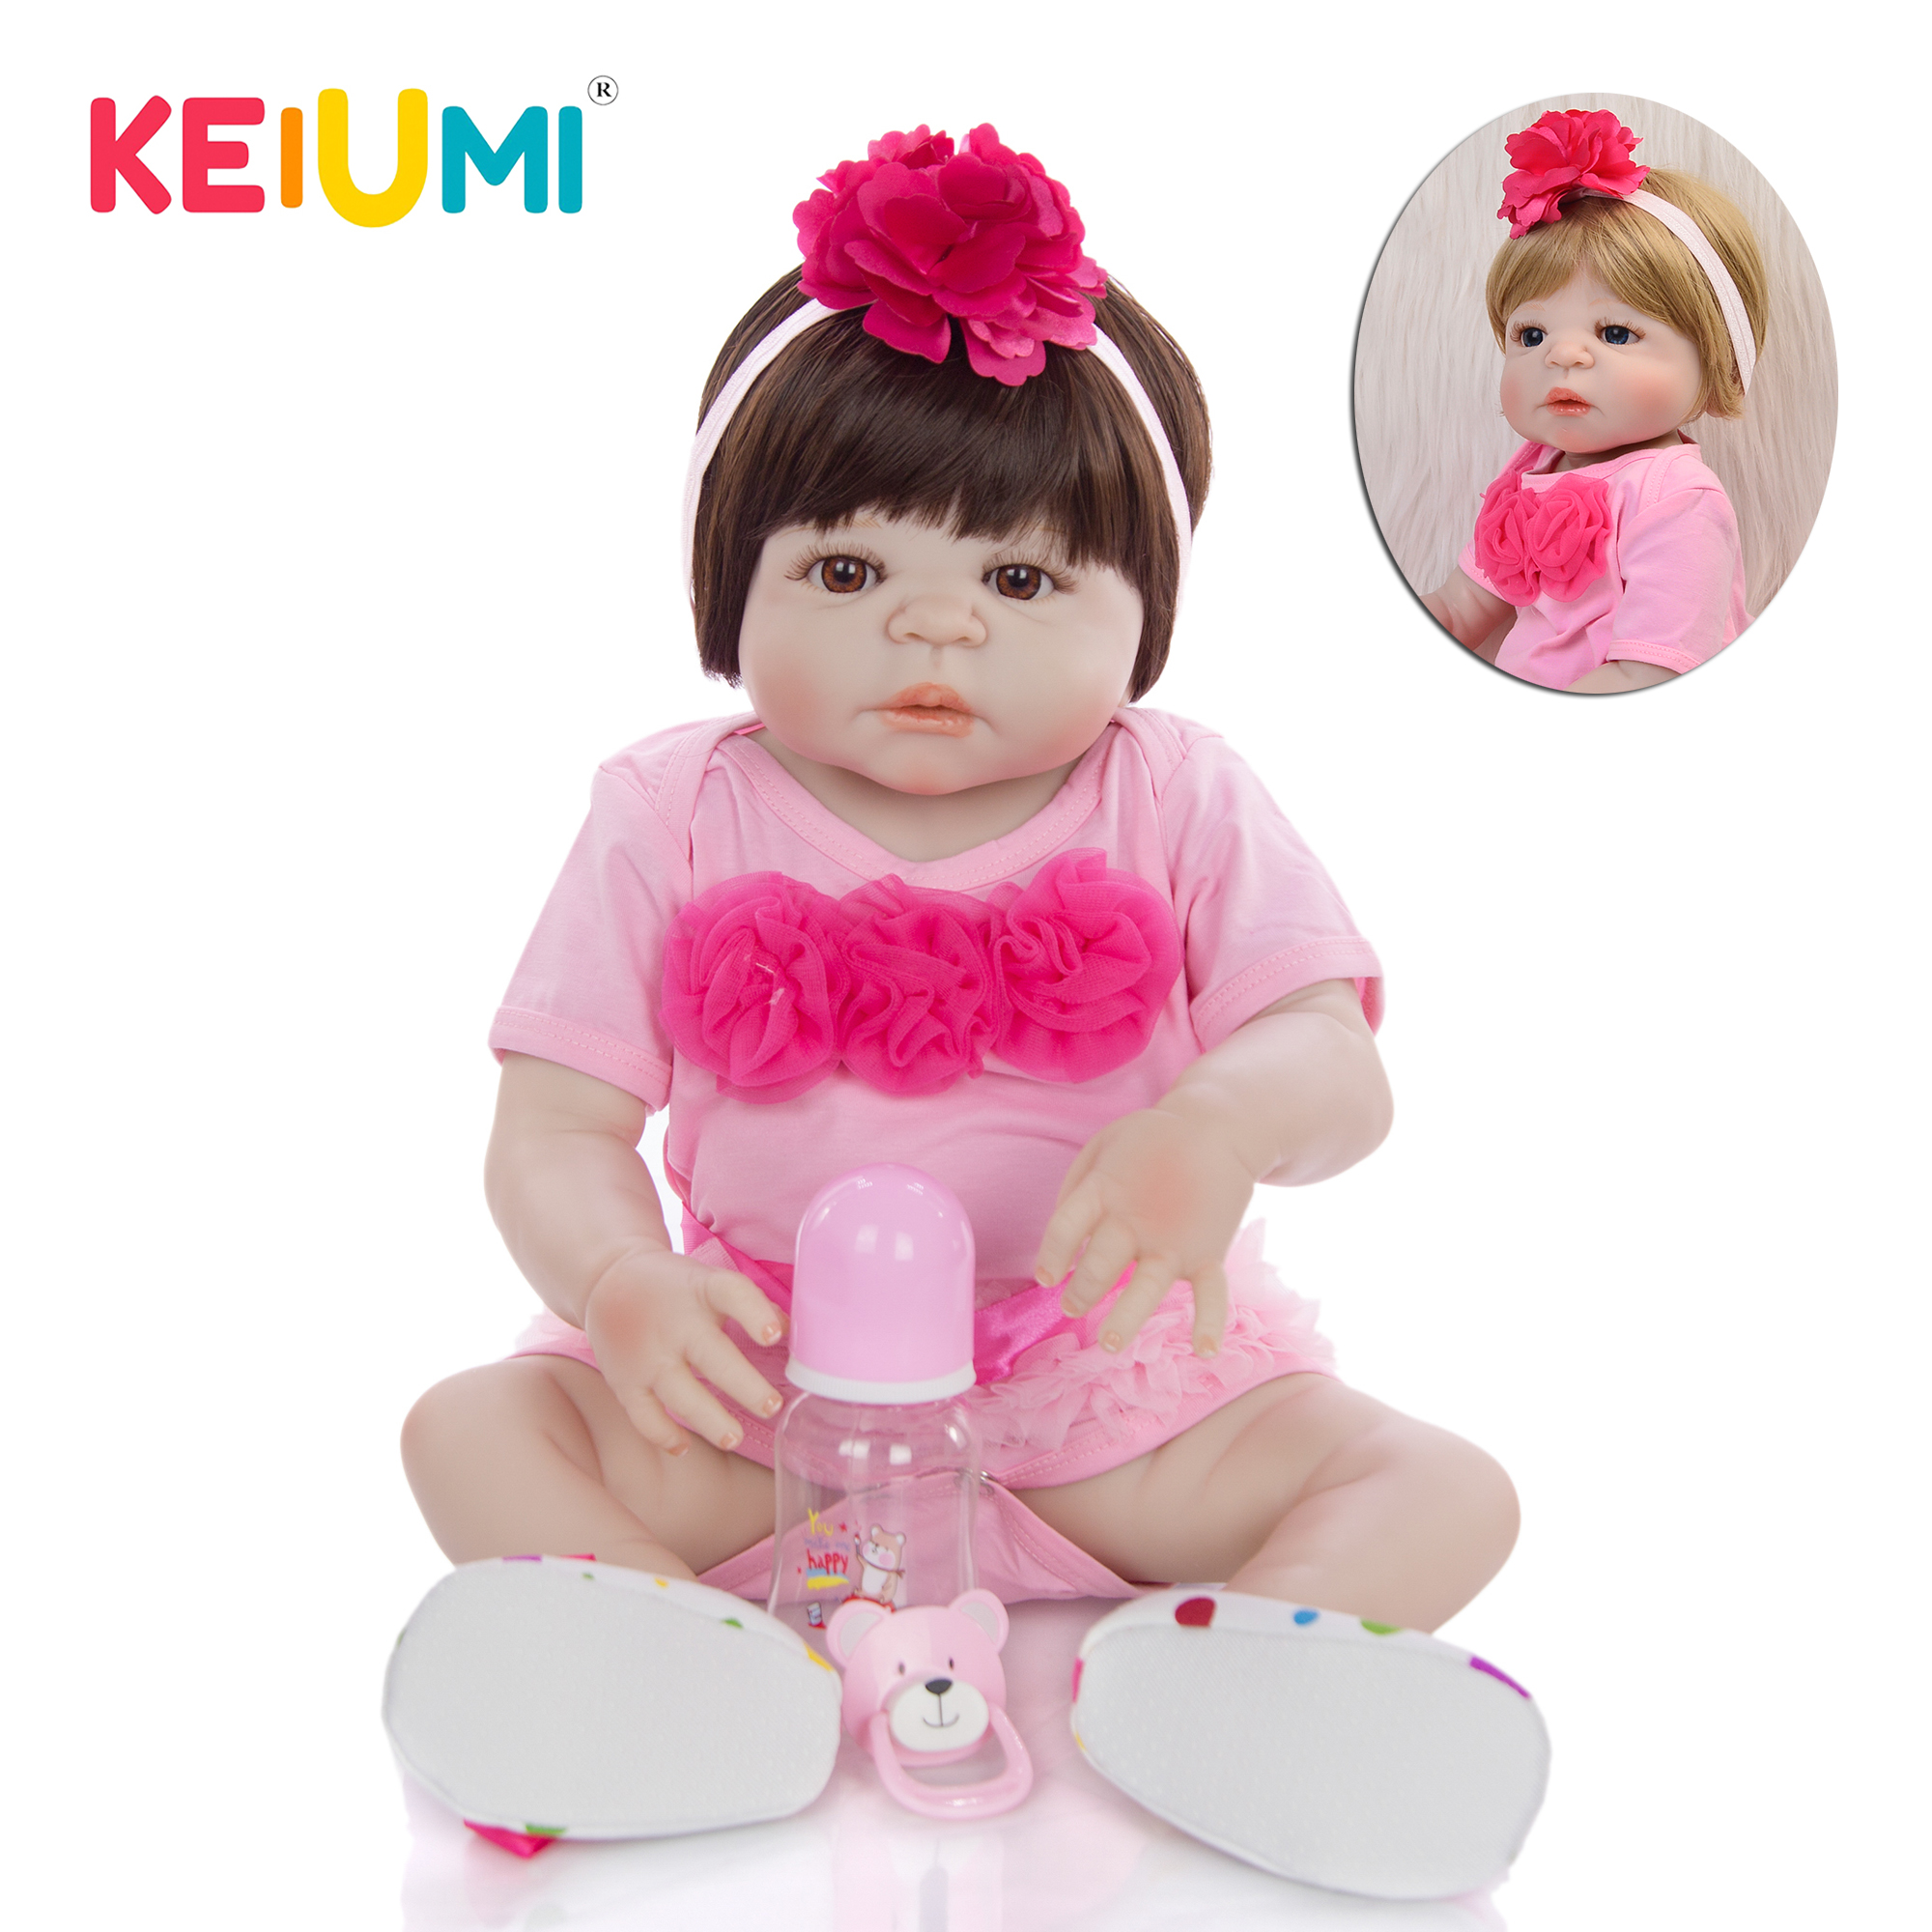 KEIUMI Hot 23'' Reborn Baby Girl Full Silicone Vinyl Waterproof Body Fashion Gold or Brown hair Twins Dolls Reborn Boneca Toys-in Dolls from Toys & Hobbies    1